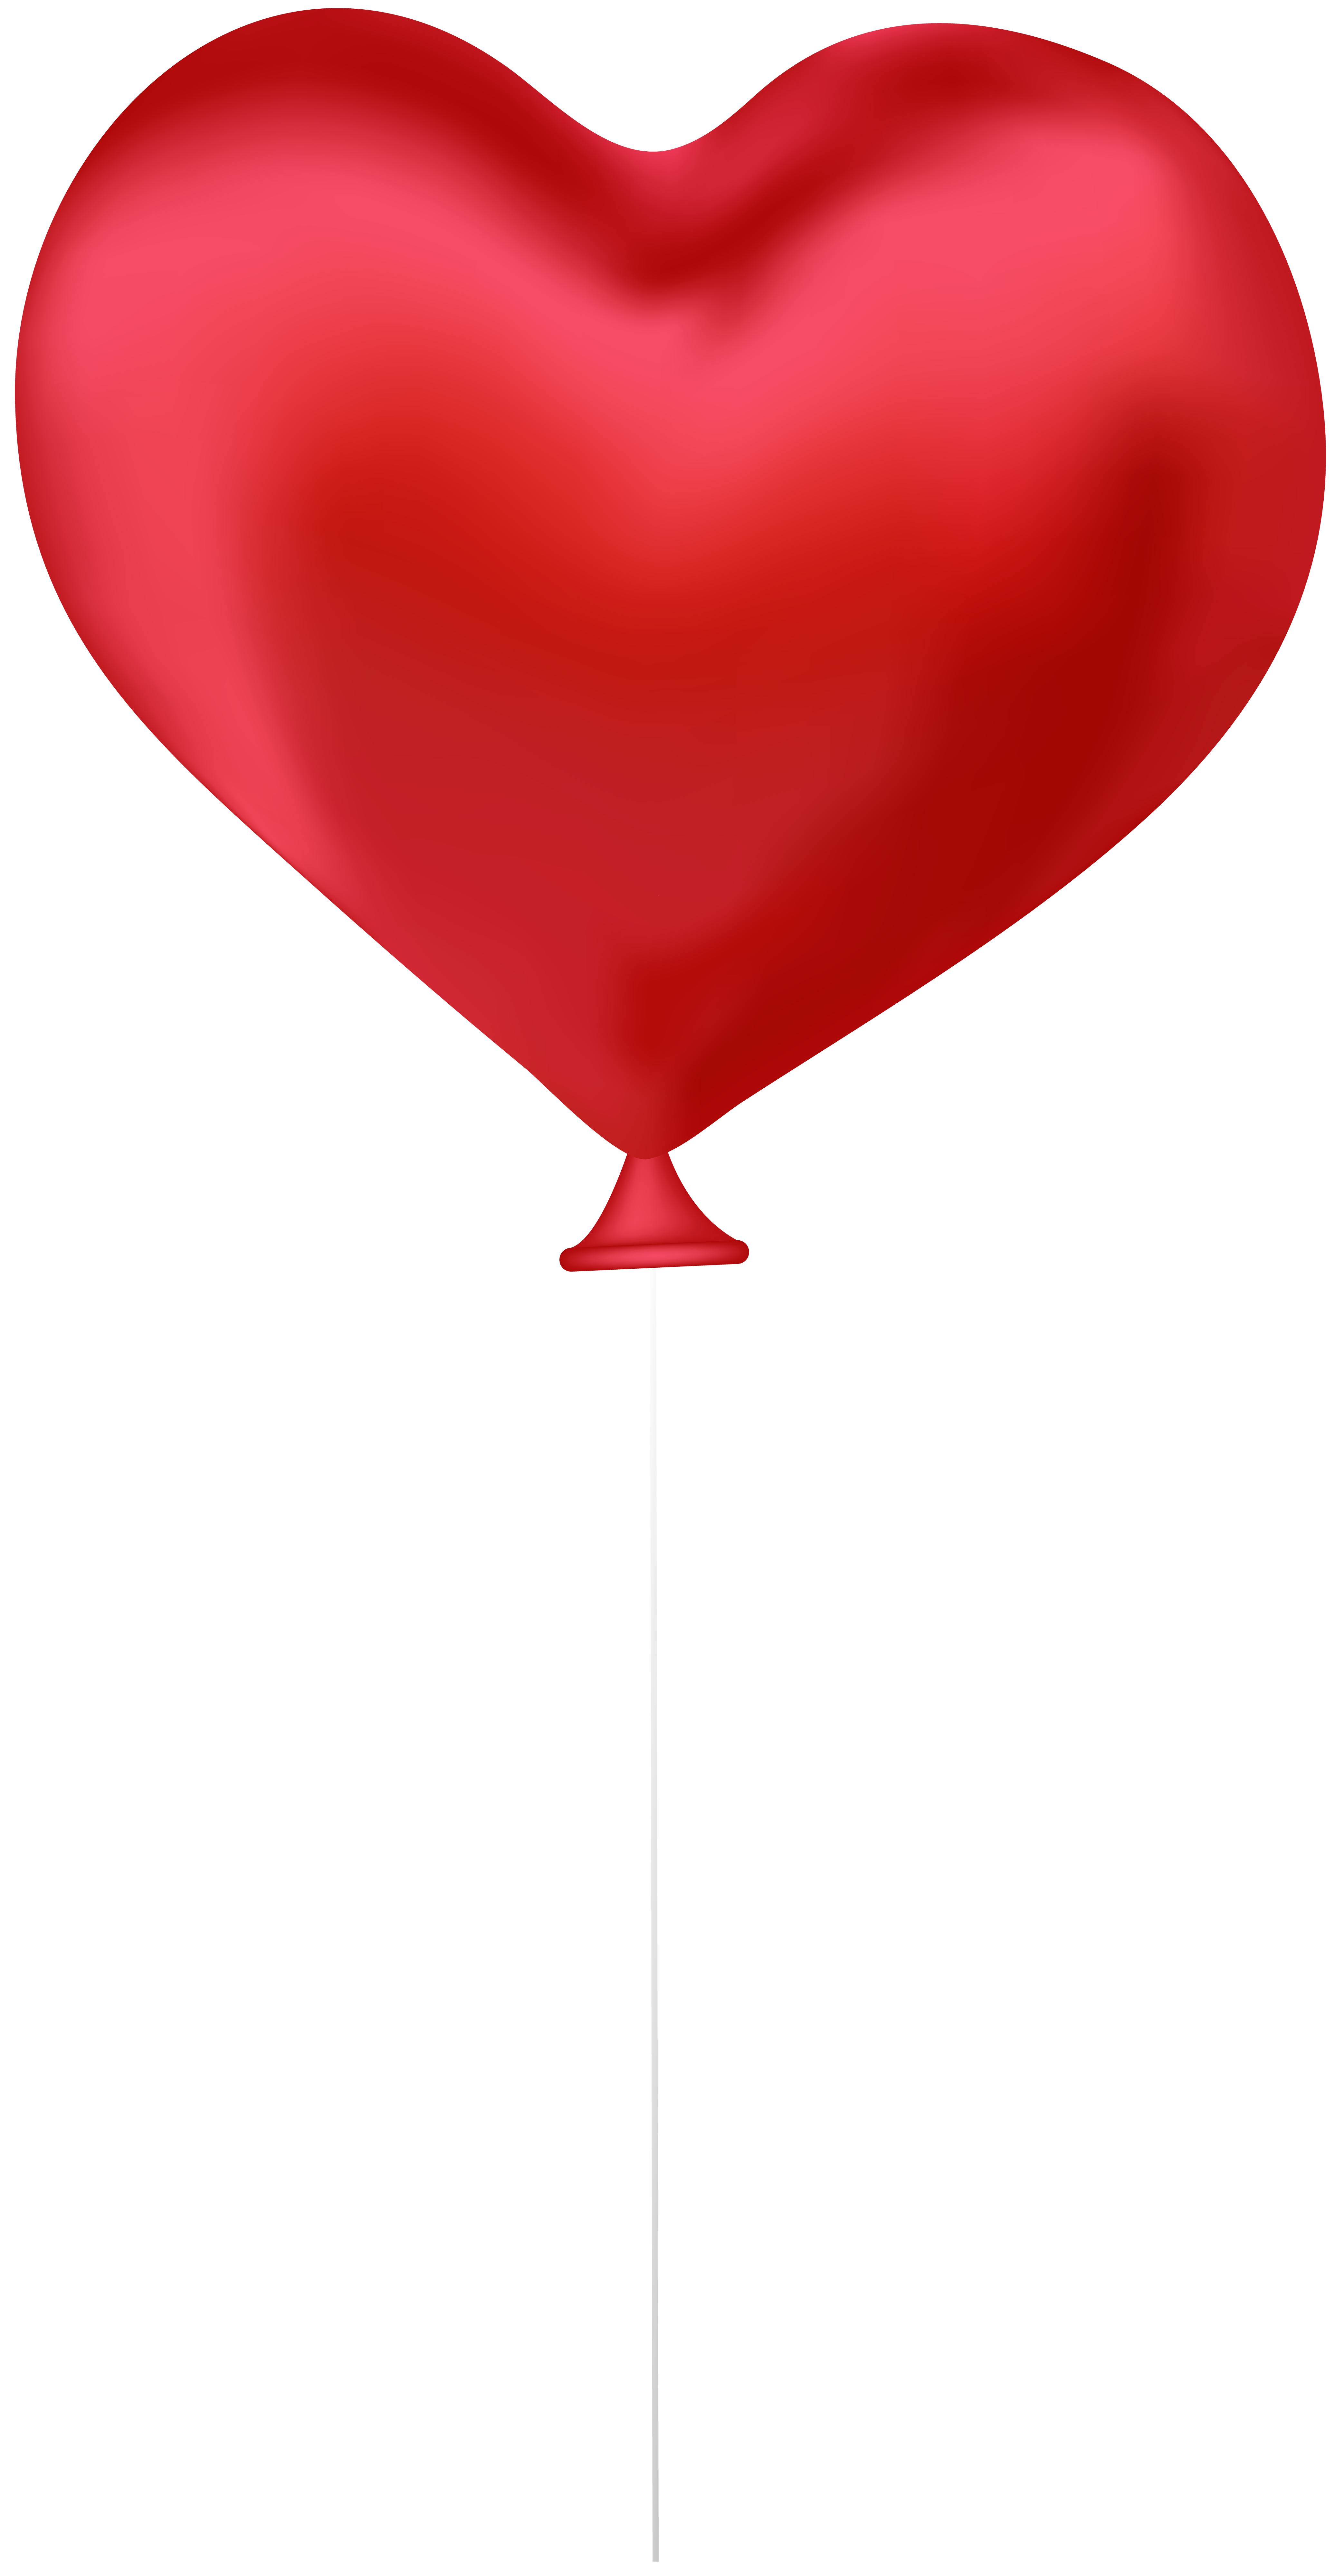 Red Heart Balloon PNG Clip Art Image.